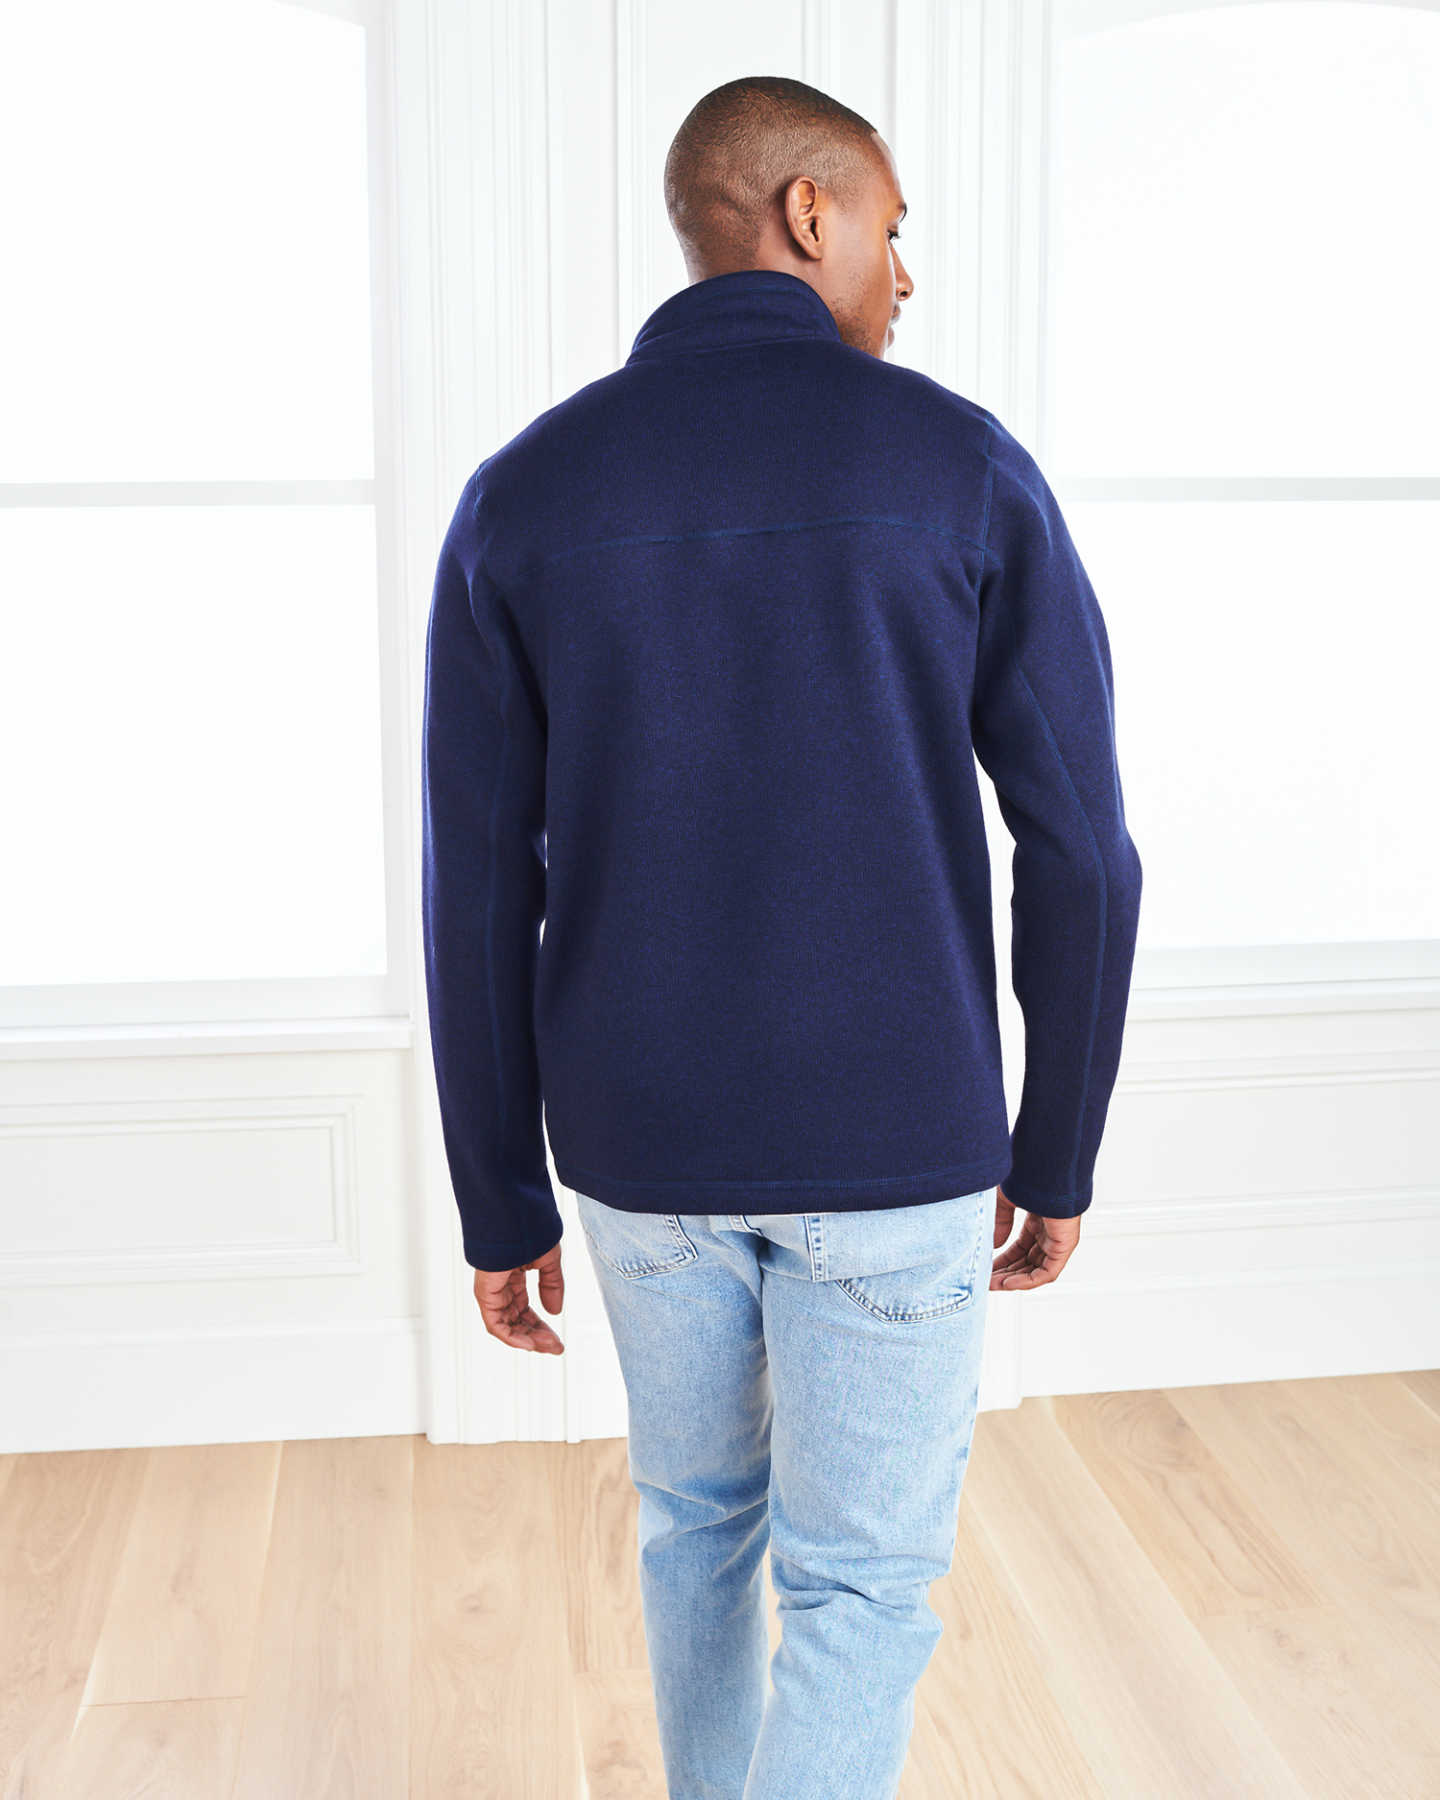 Recycled Sweater Fleece Pullover Jacket - undefined - 4